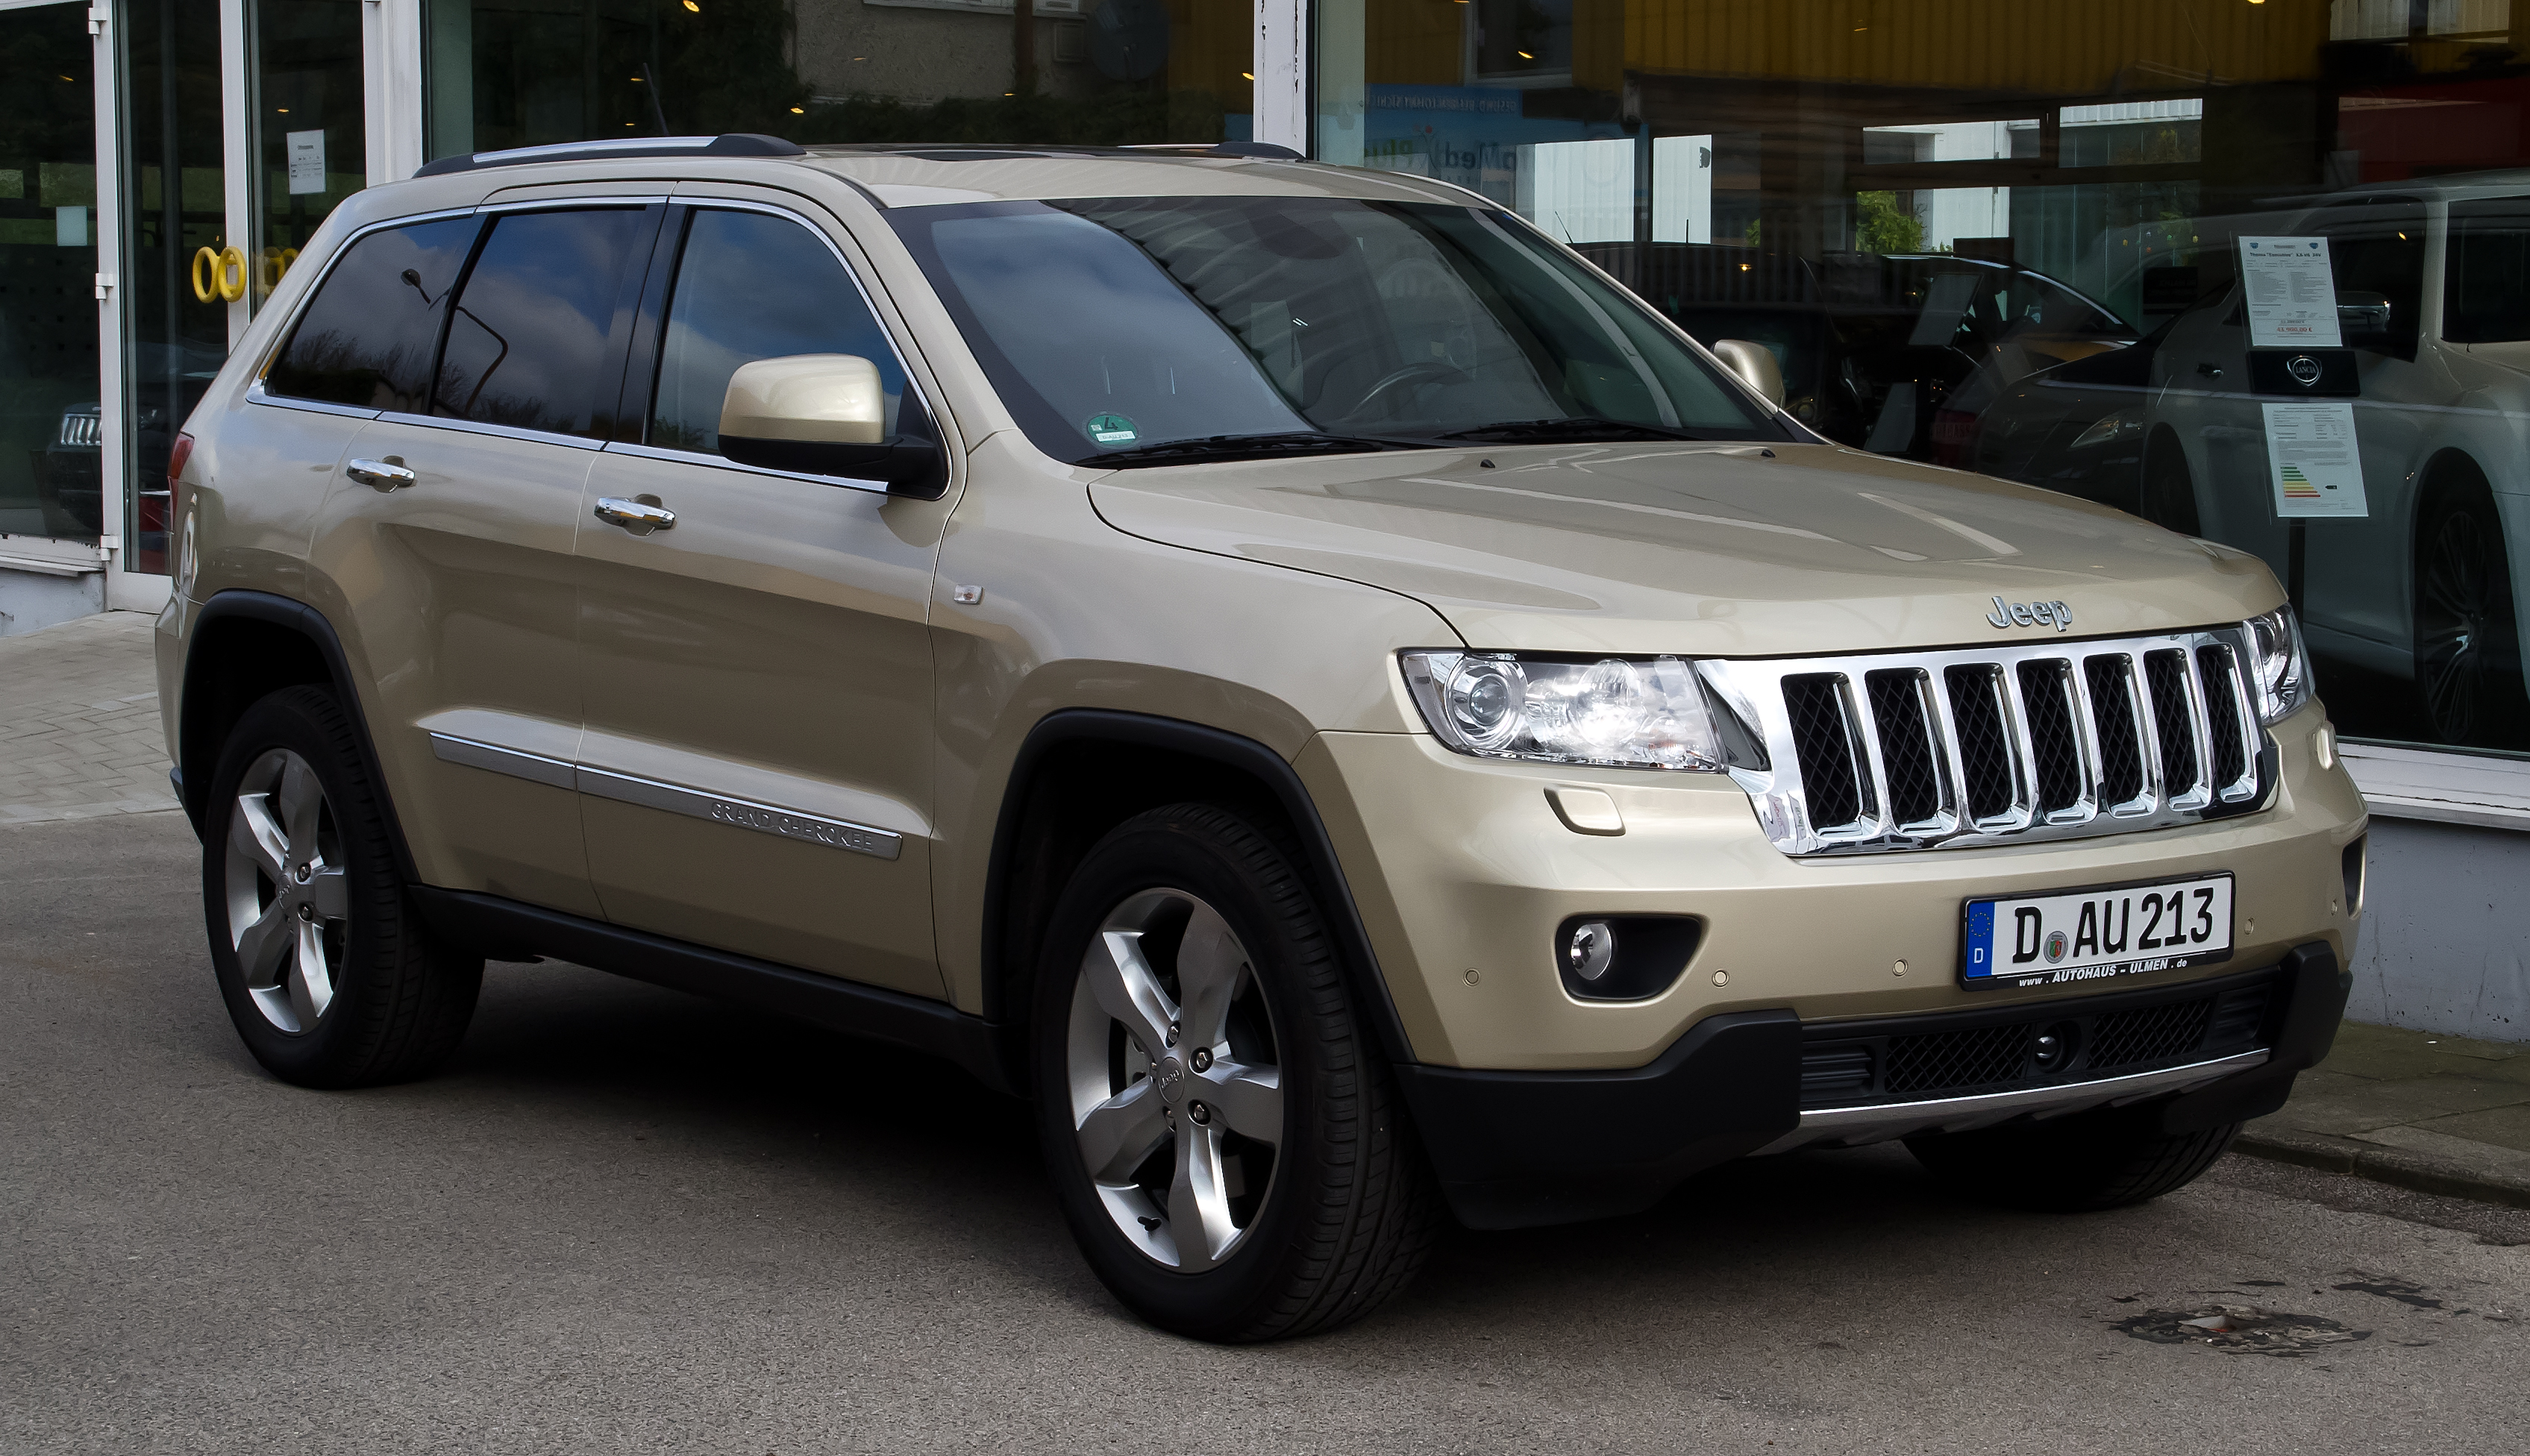 Jeep Grand Cherokee (WK2) - Wikipedia